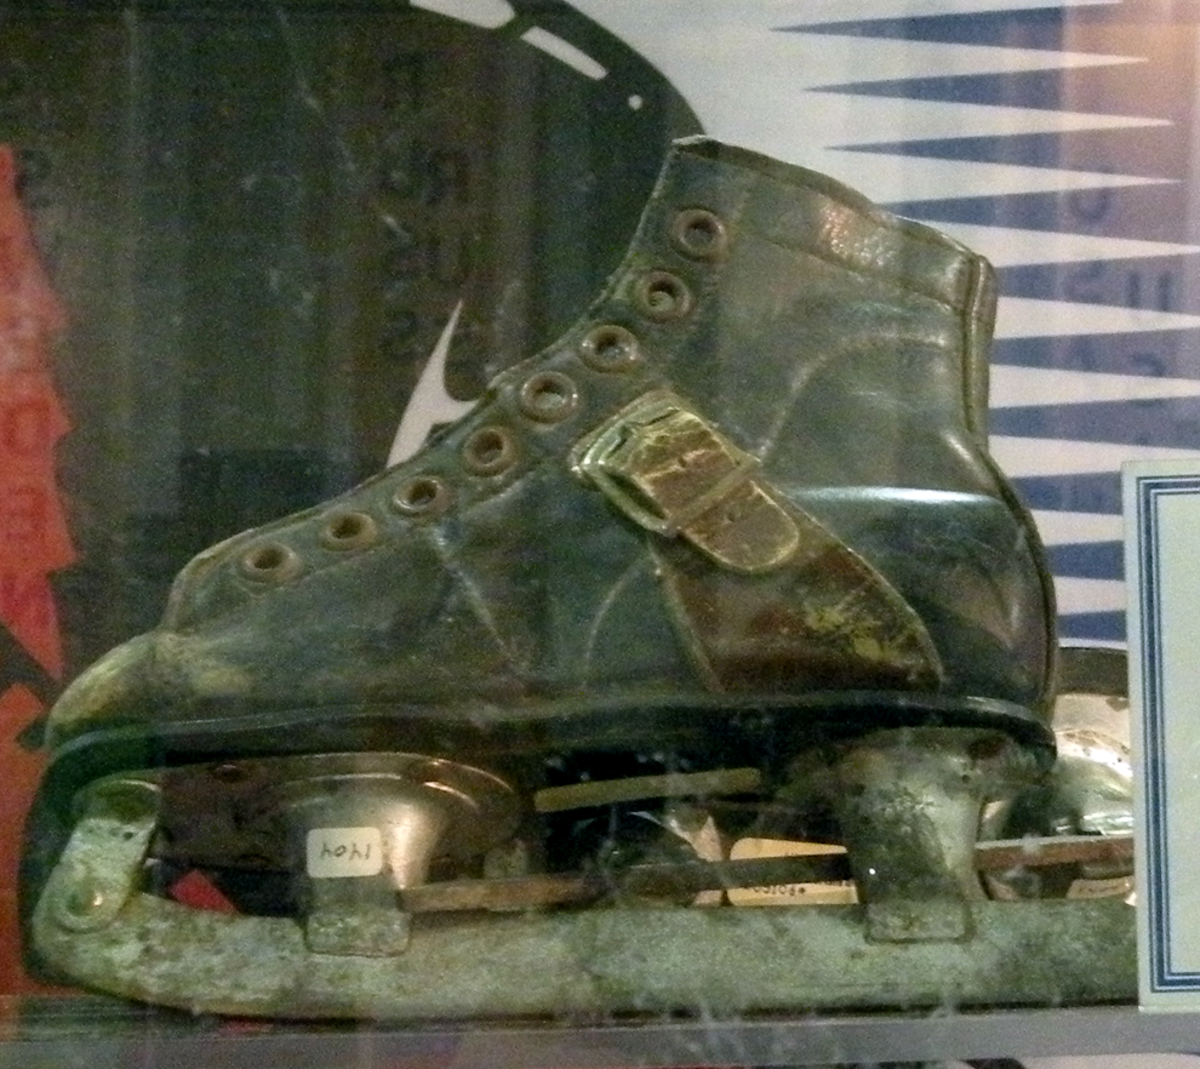 This is the pair of skates worn by the three year old Wayne Gretzky. The legendary hockey player grew up in Brantford, Ontario.